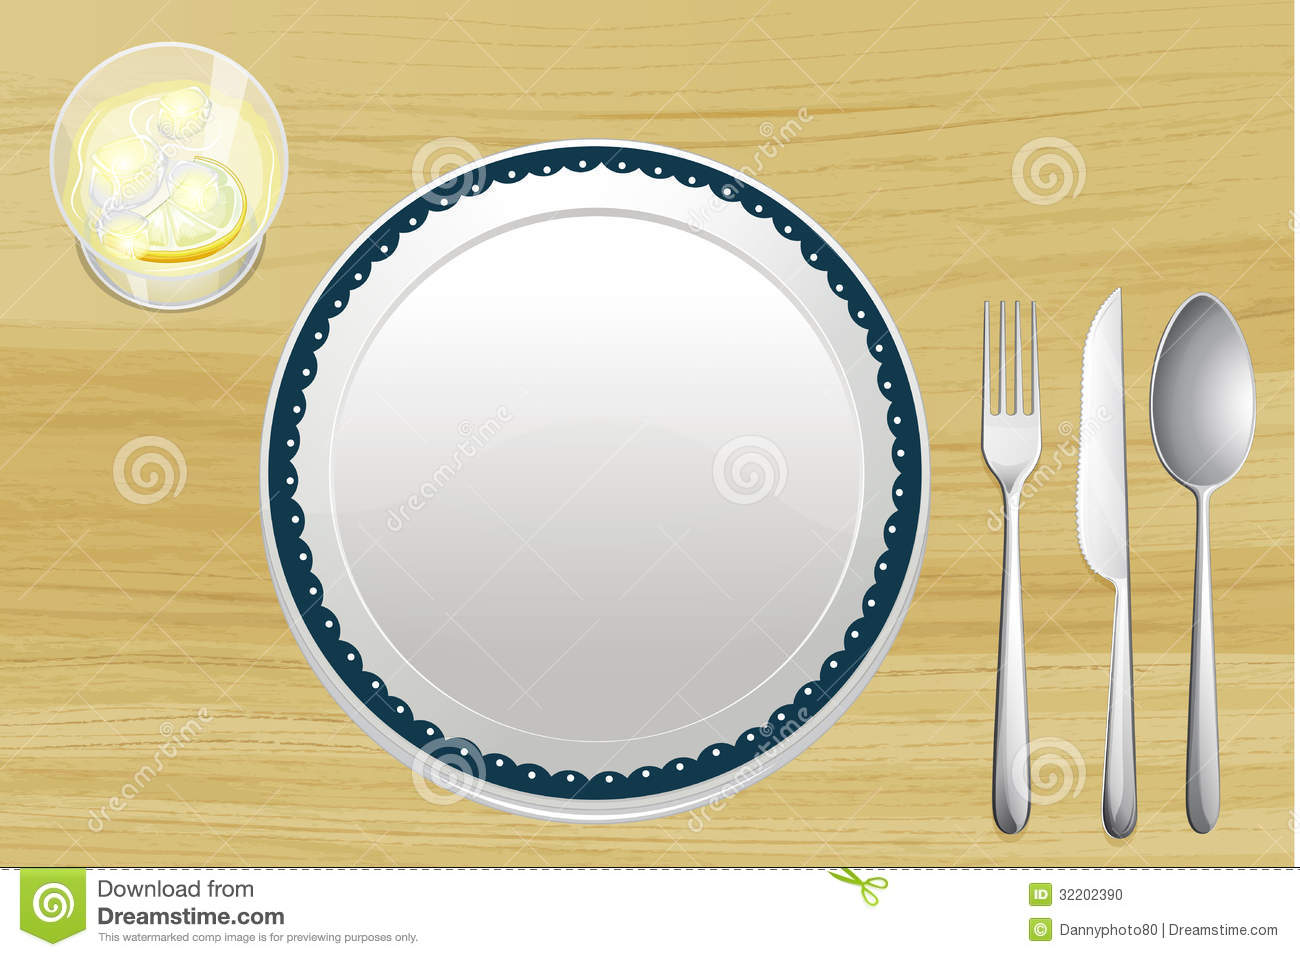 Dinner Plate Clipart Empty Plate And A Bowl Of